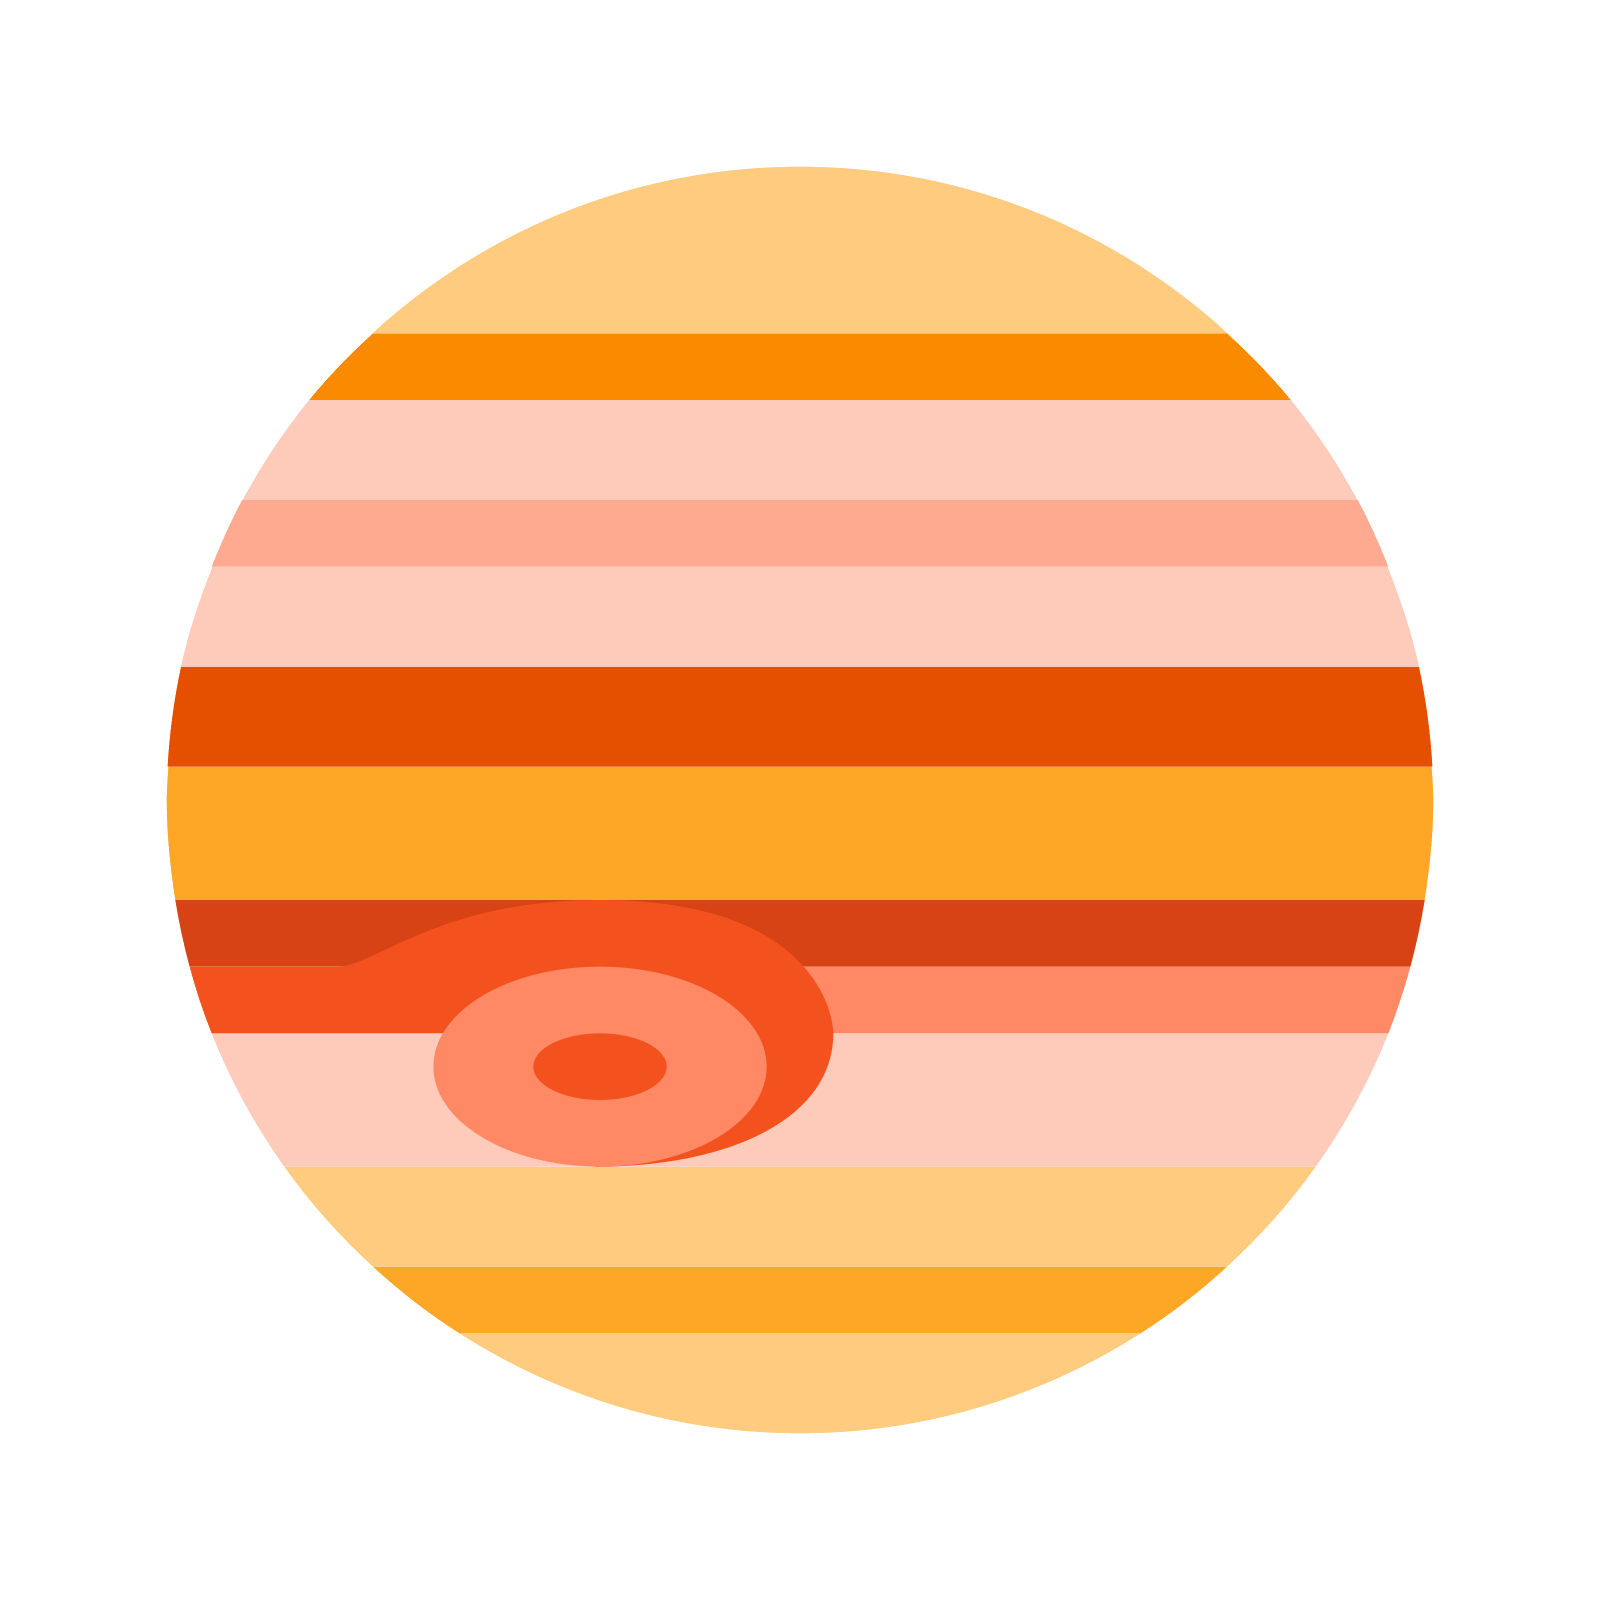 clipart royalty free stock  for free download. Planets vector.